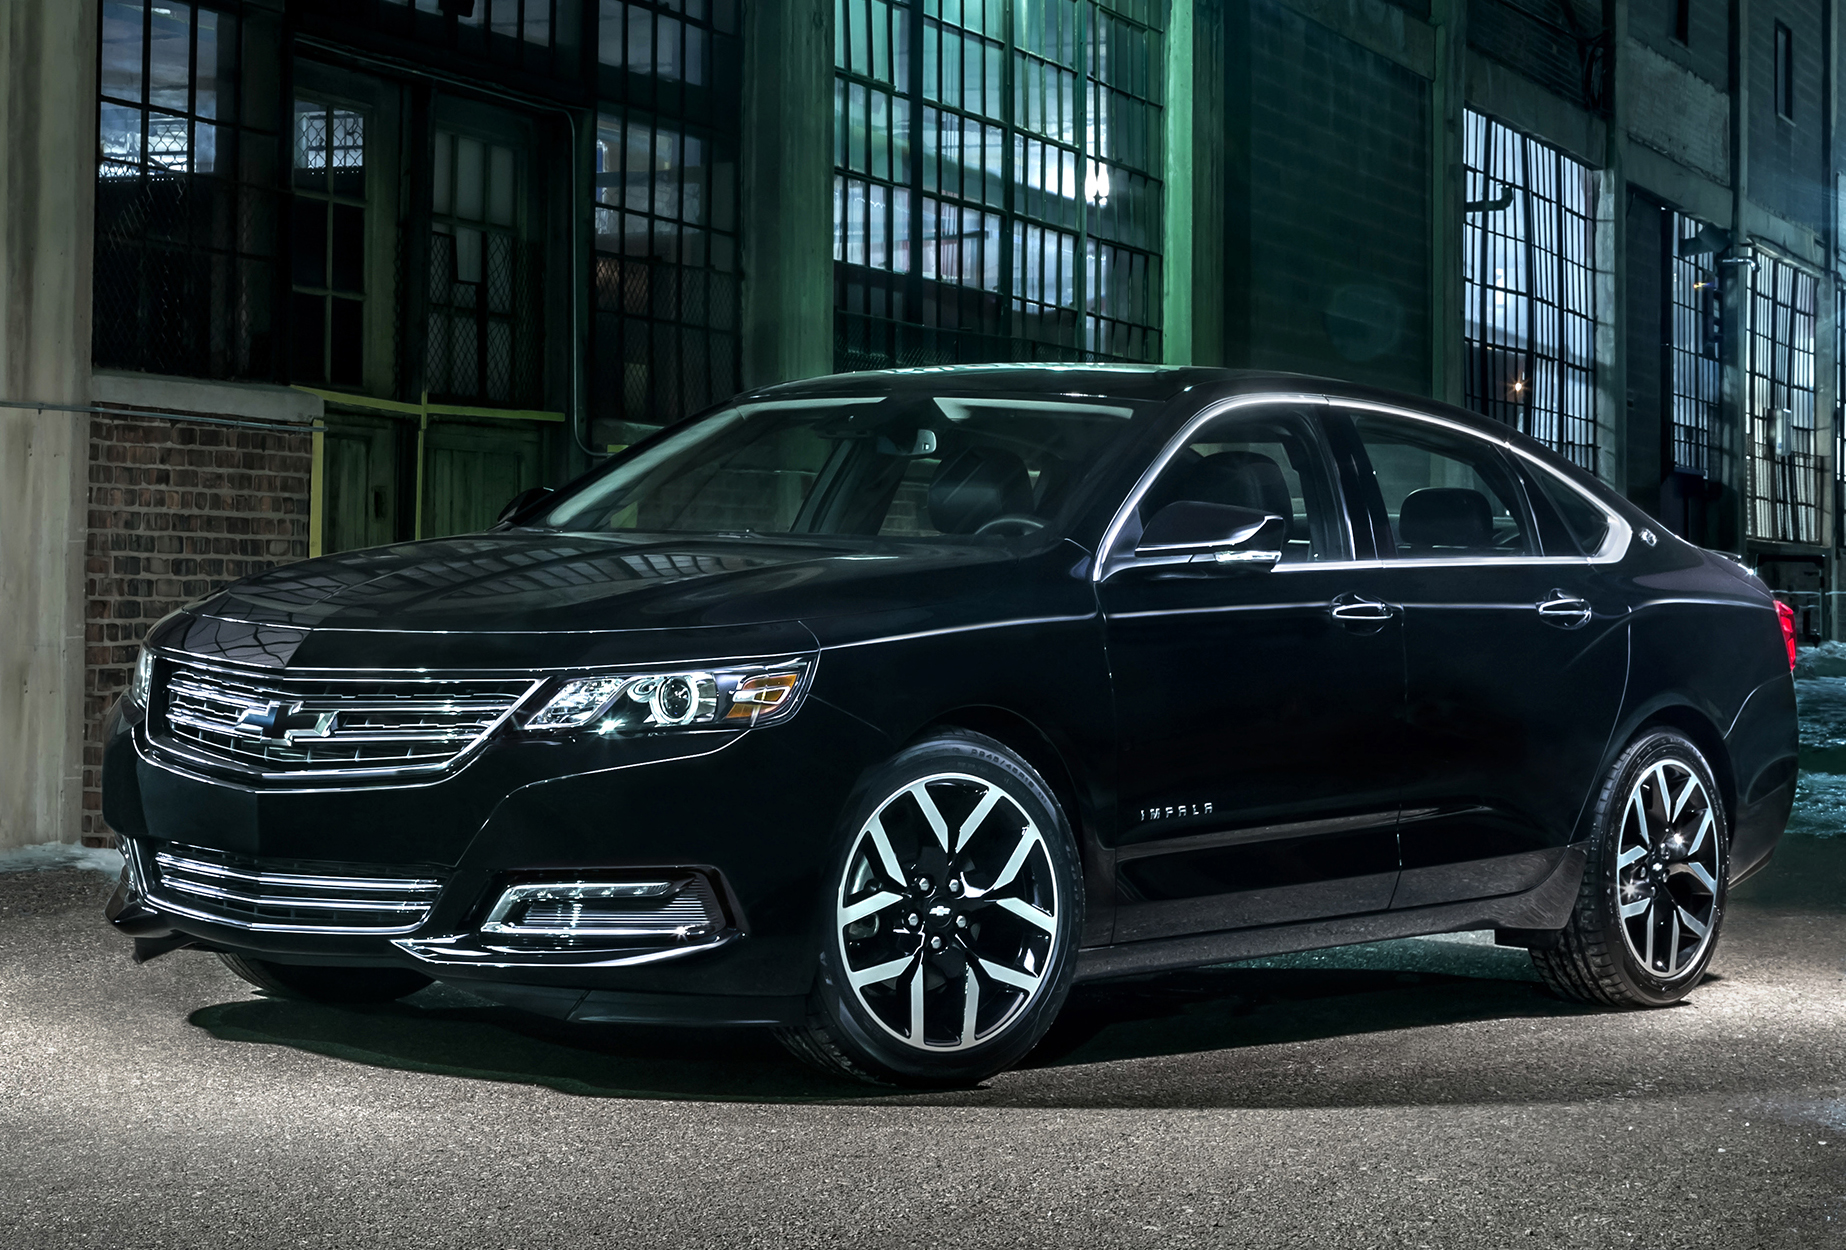 Chevy\'s reinvented Impala goes uptown with style, comfort - Houston ...